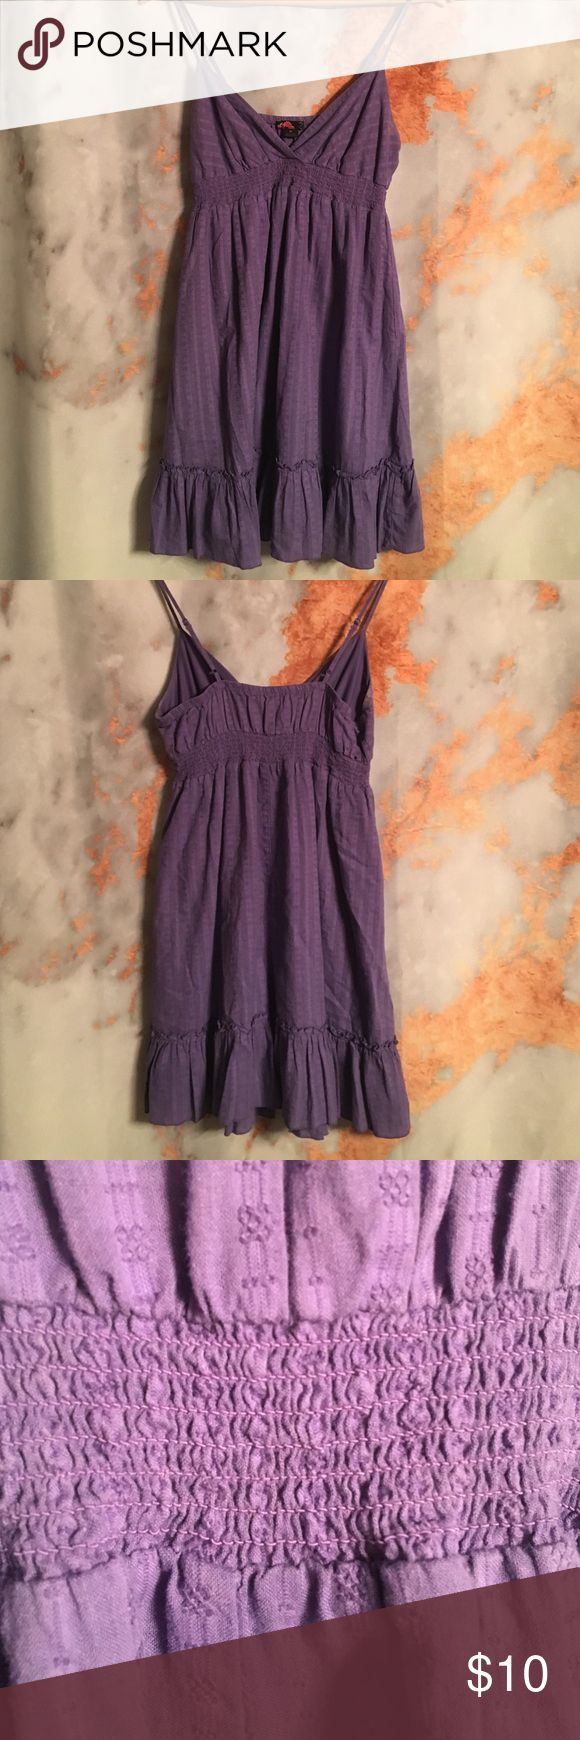 Purple sundress by forever 21 Purple baby doll style sundress, super comfy and flattering, lined Forever 21 Dresses Mini